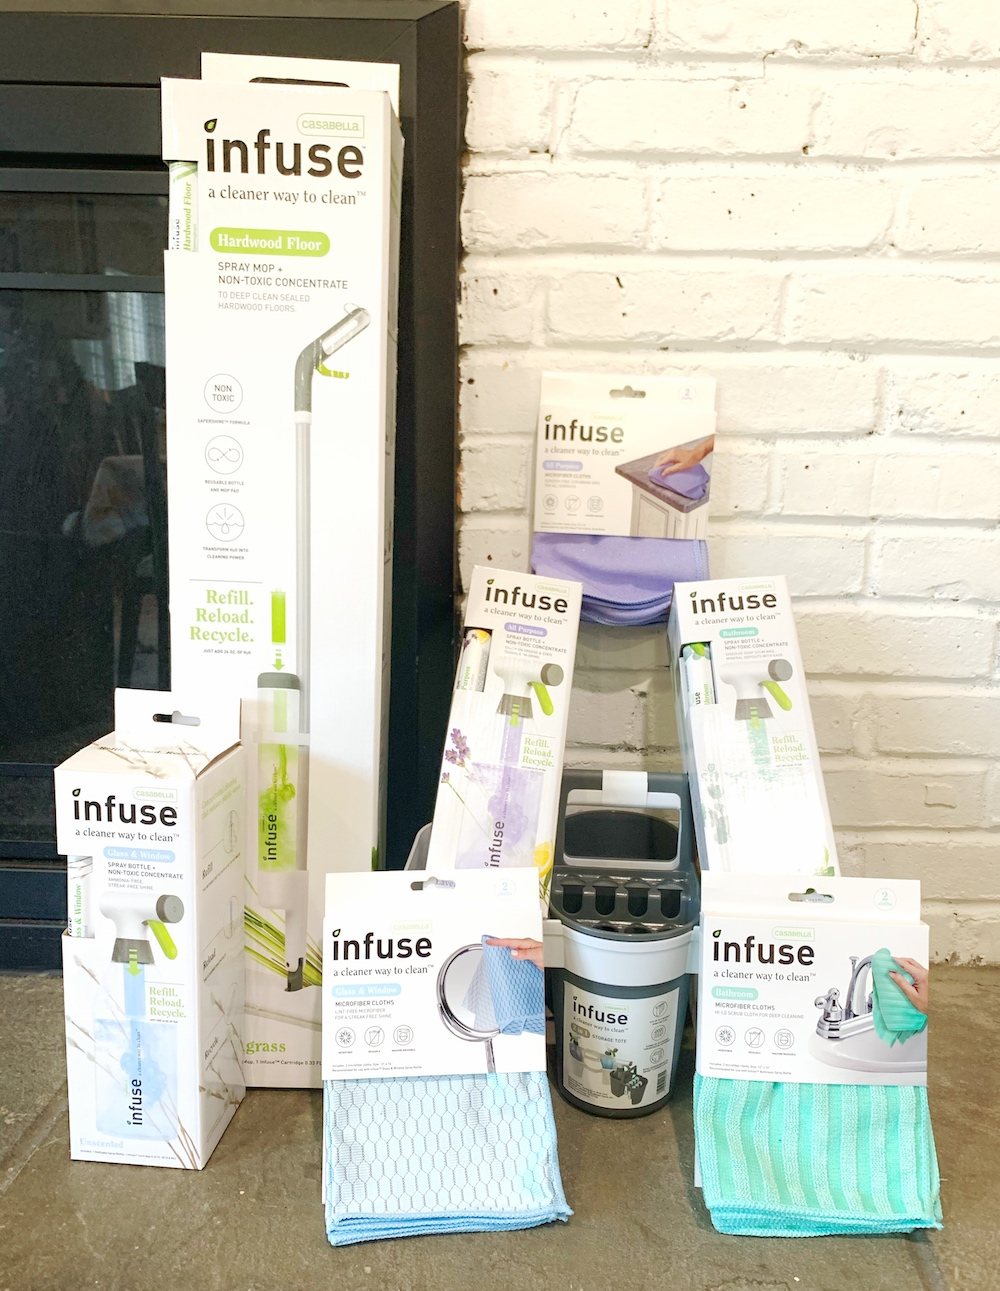 infuse cleaning products